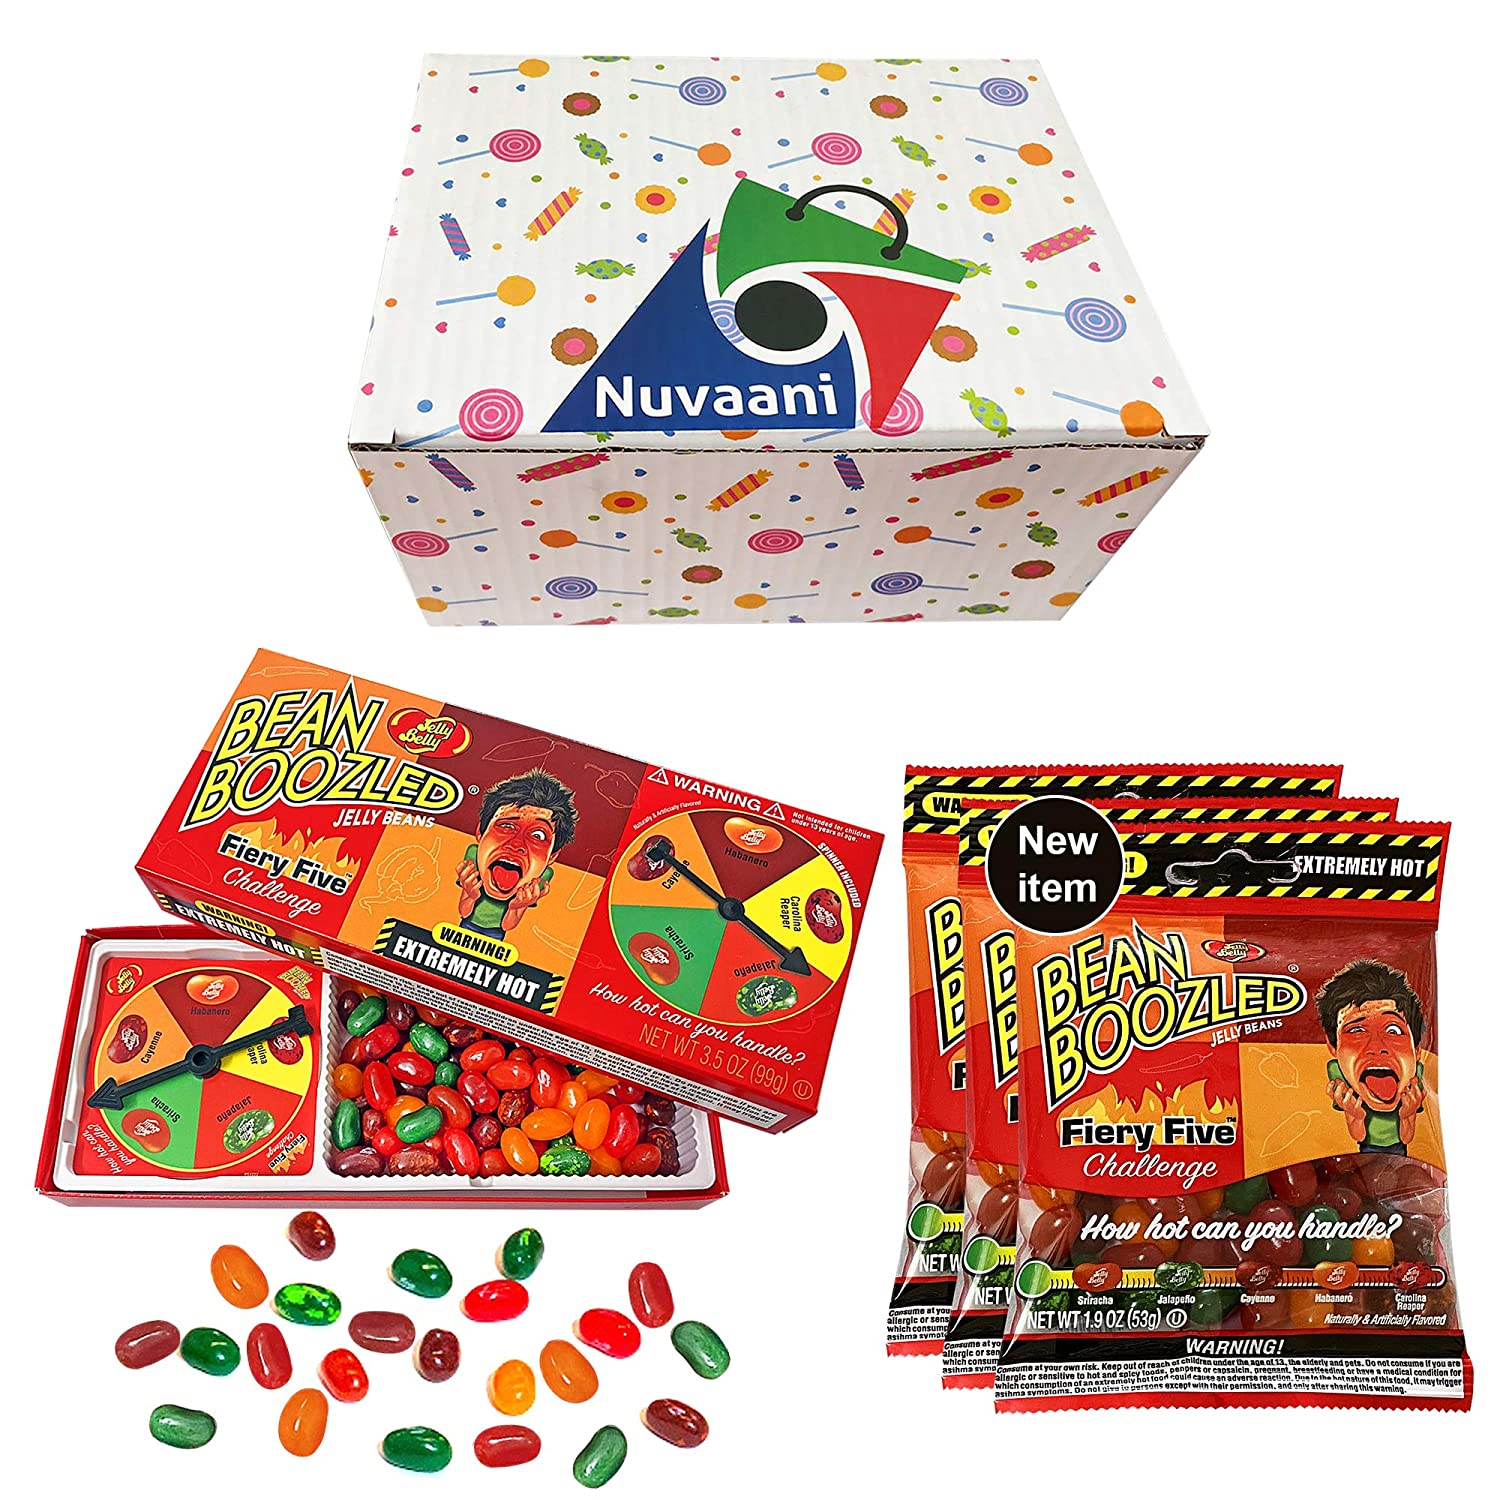 Jelly Belly Beanboozled Fiery Five Spicy Jelly Beans Extremely Hot   Boozled Spinner Gift Box Challenge   Three Refill Packed Pepper Candy Game   Tasty Flavorful and Chewy in Nuvaani Gift Box